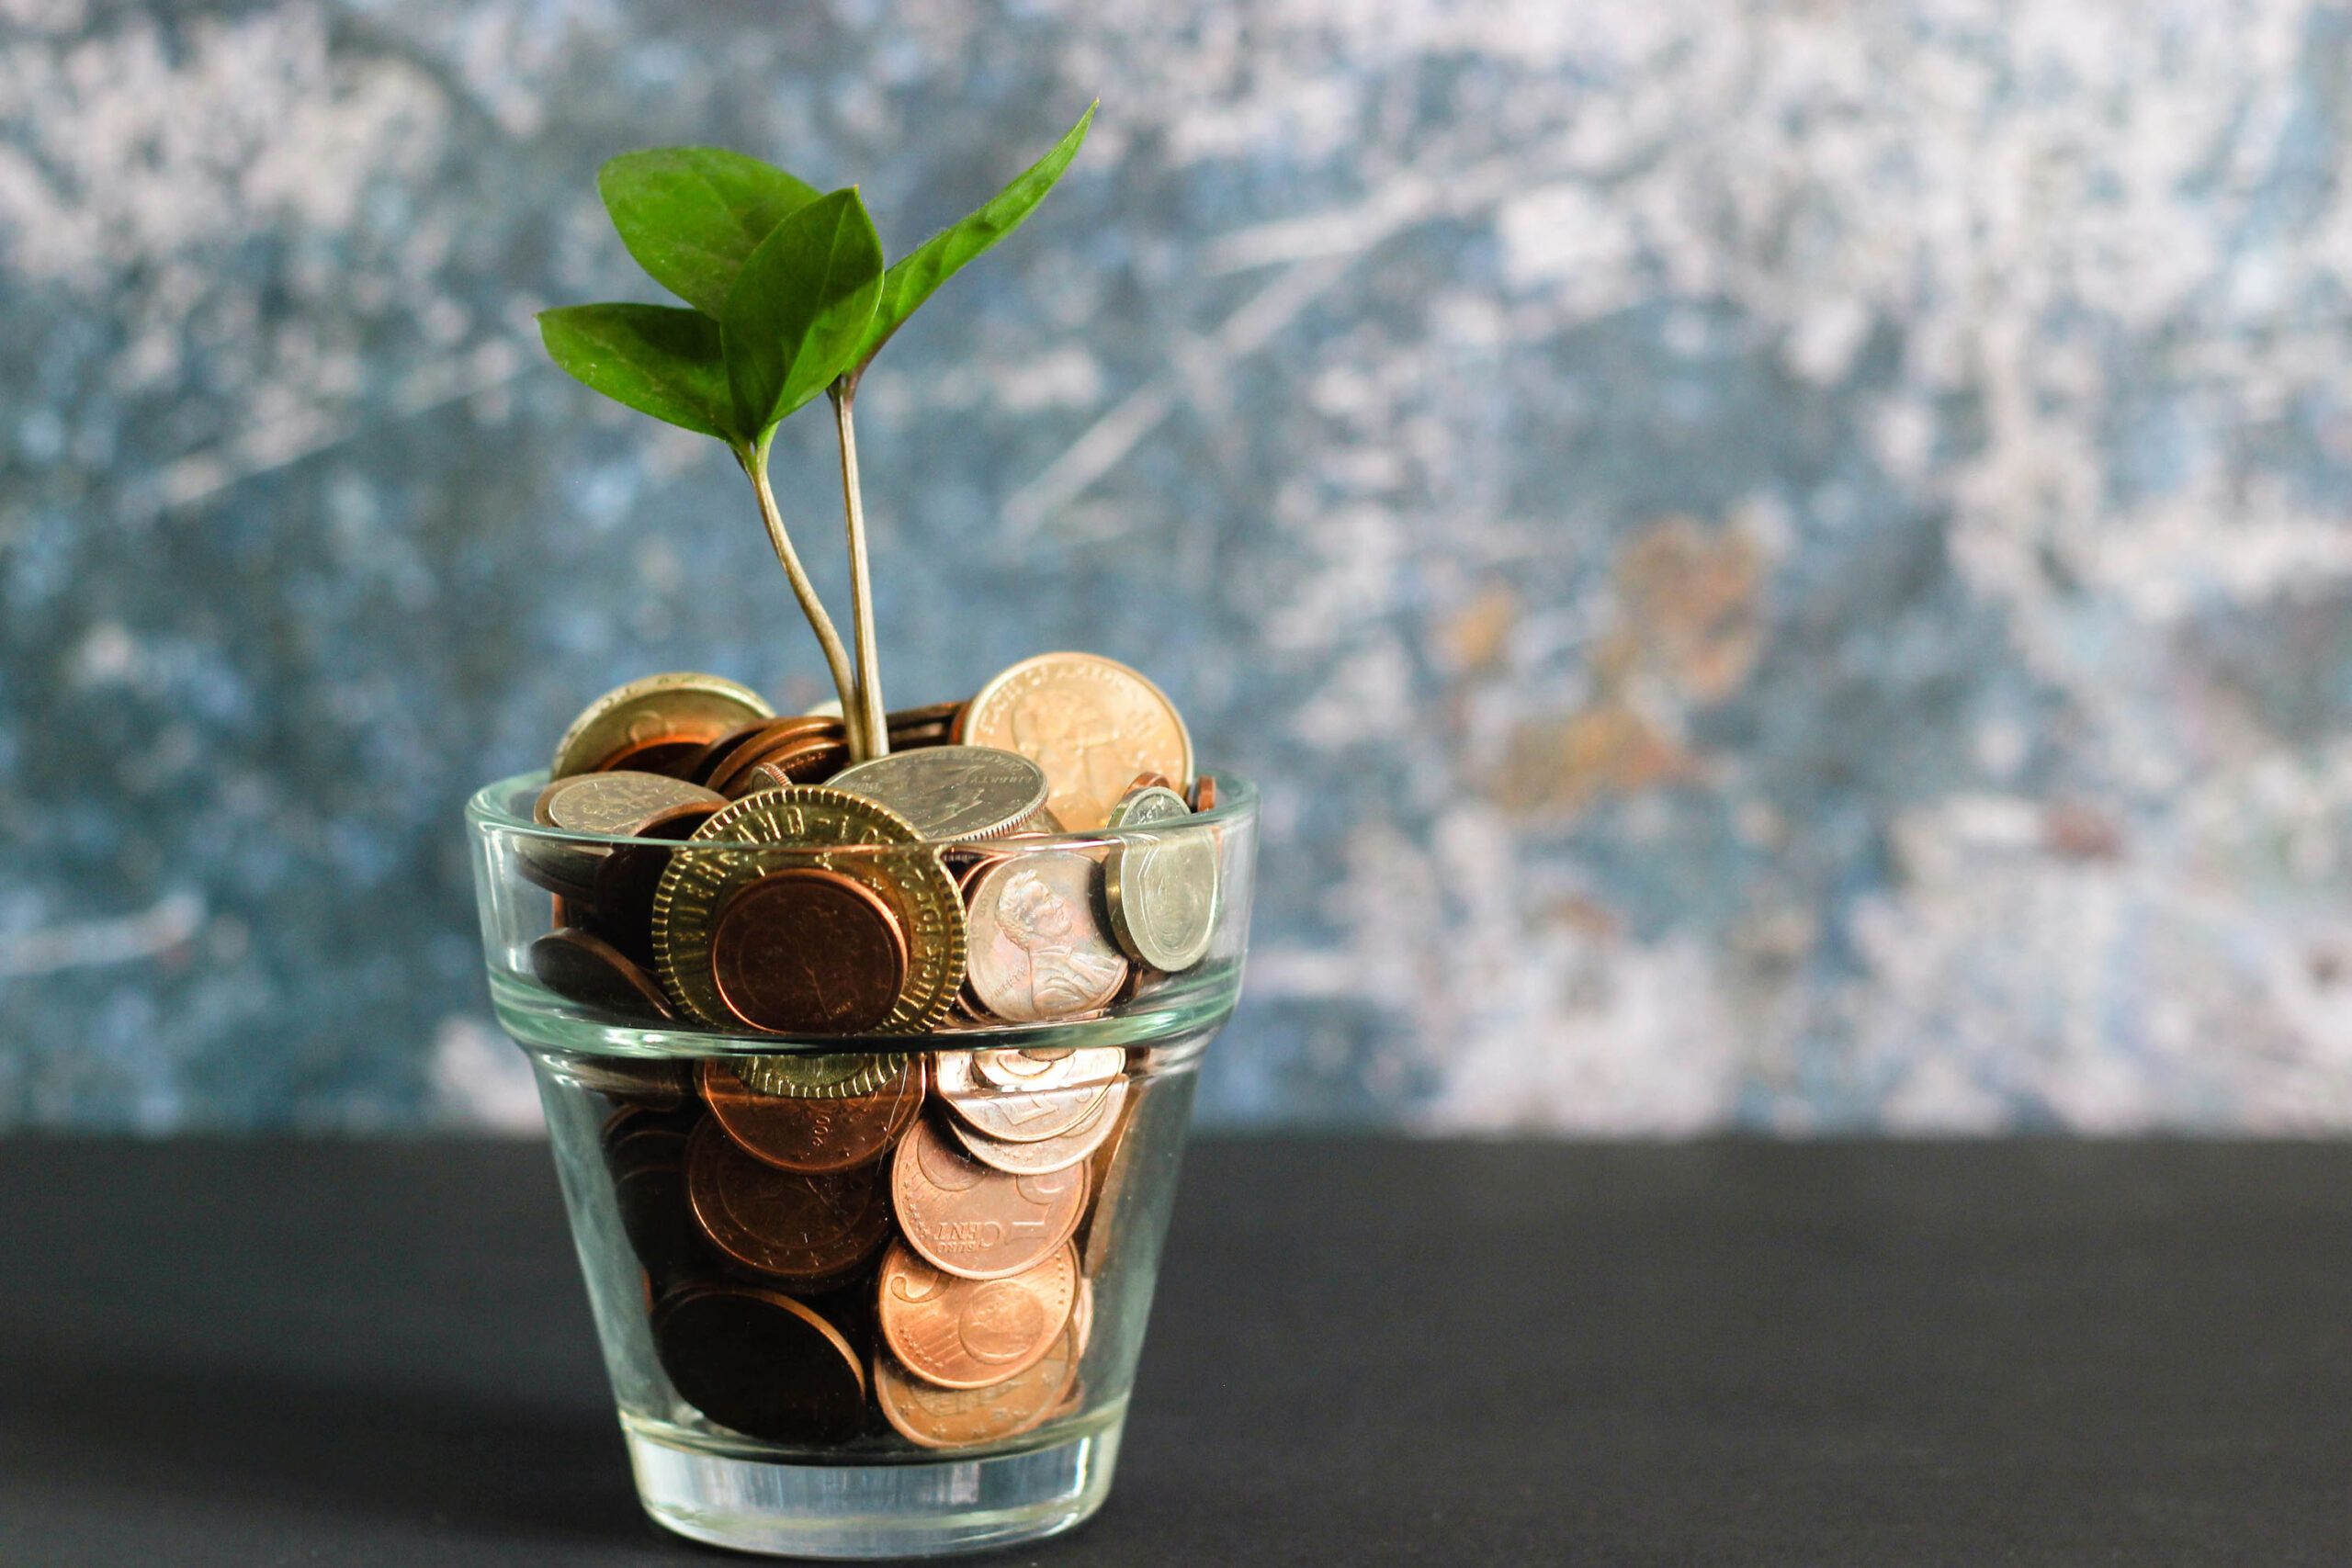 Picture of Money in Jar